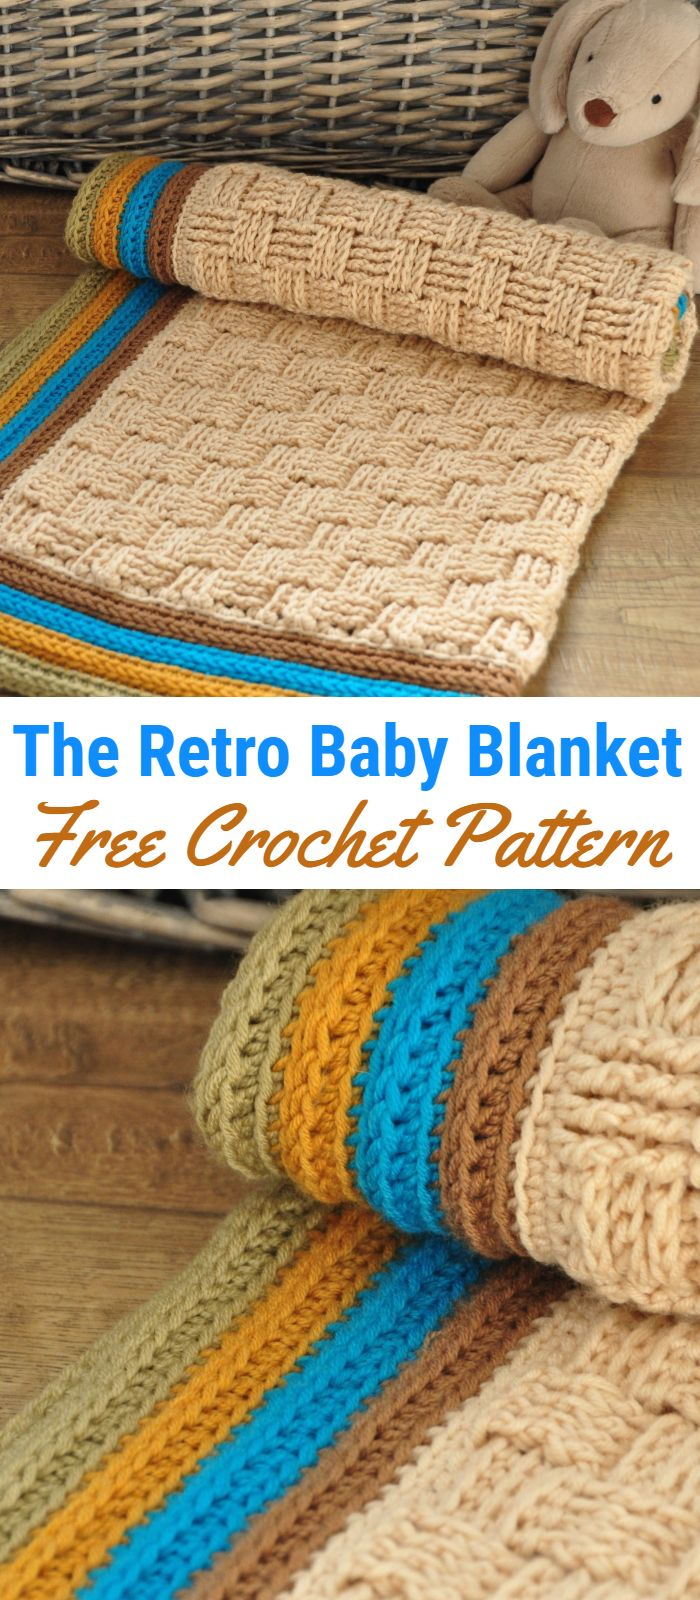 The Retro Baby Blanket – Free Crochet Pattern